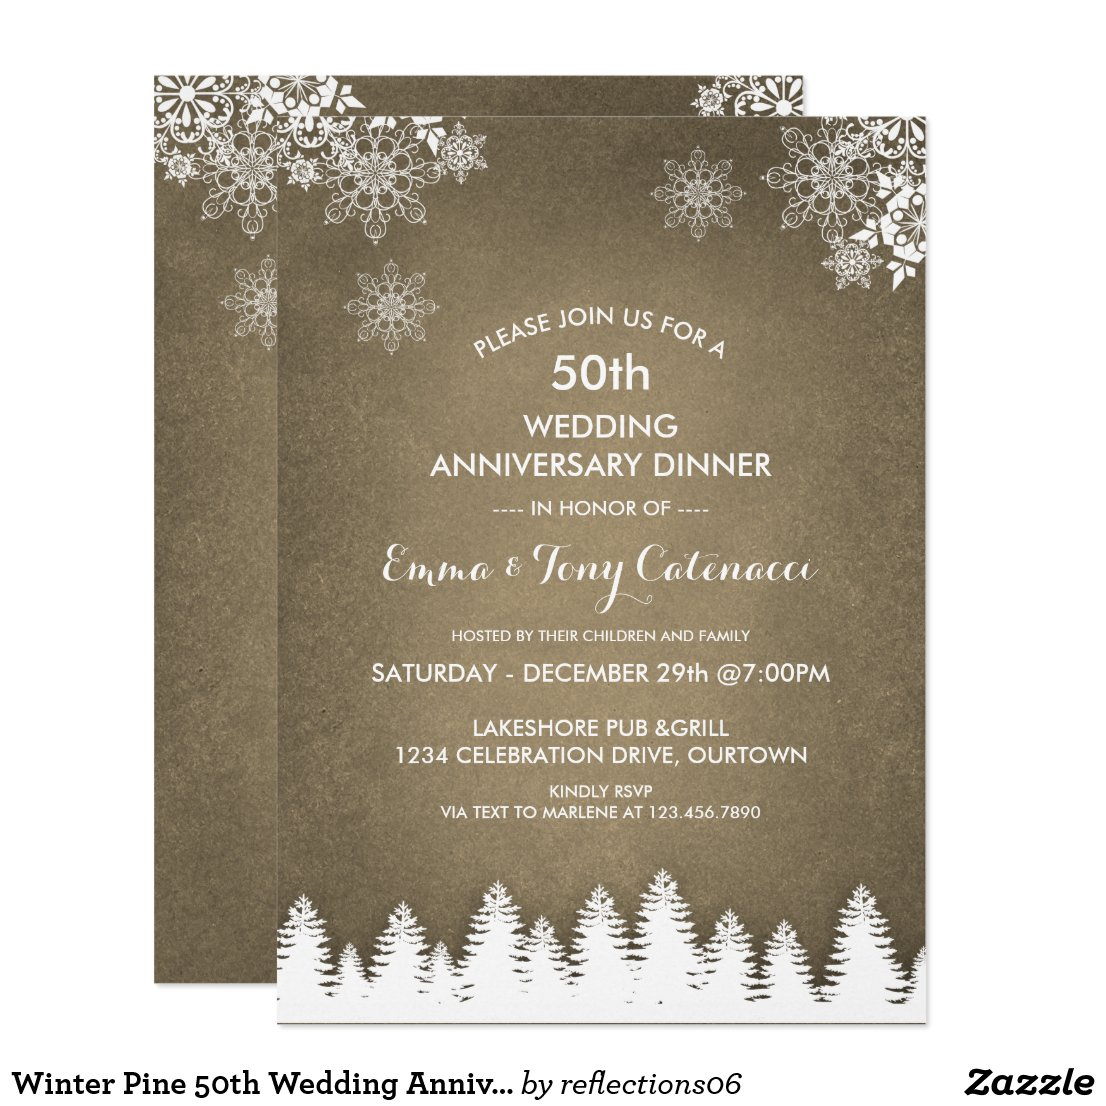 Winter Pine 50th Wedding Anniversary Dinner Invitation